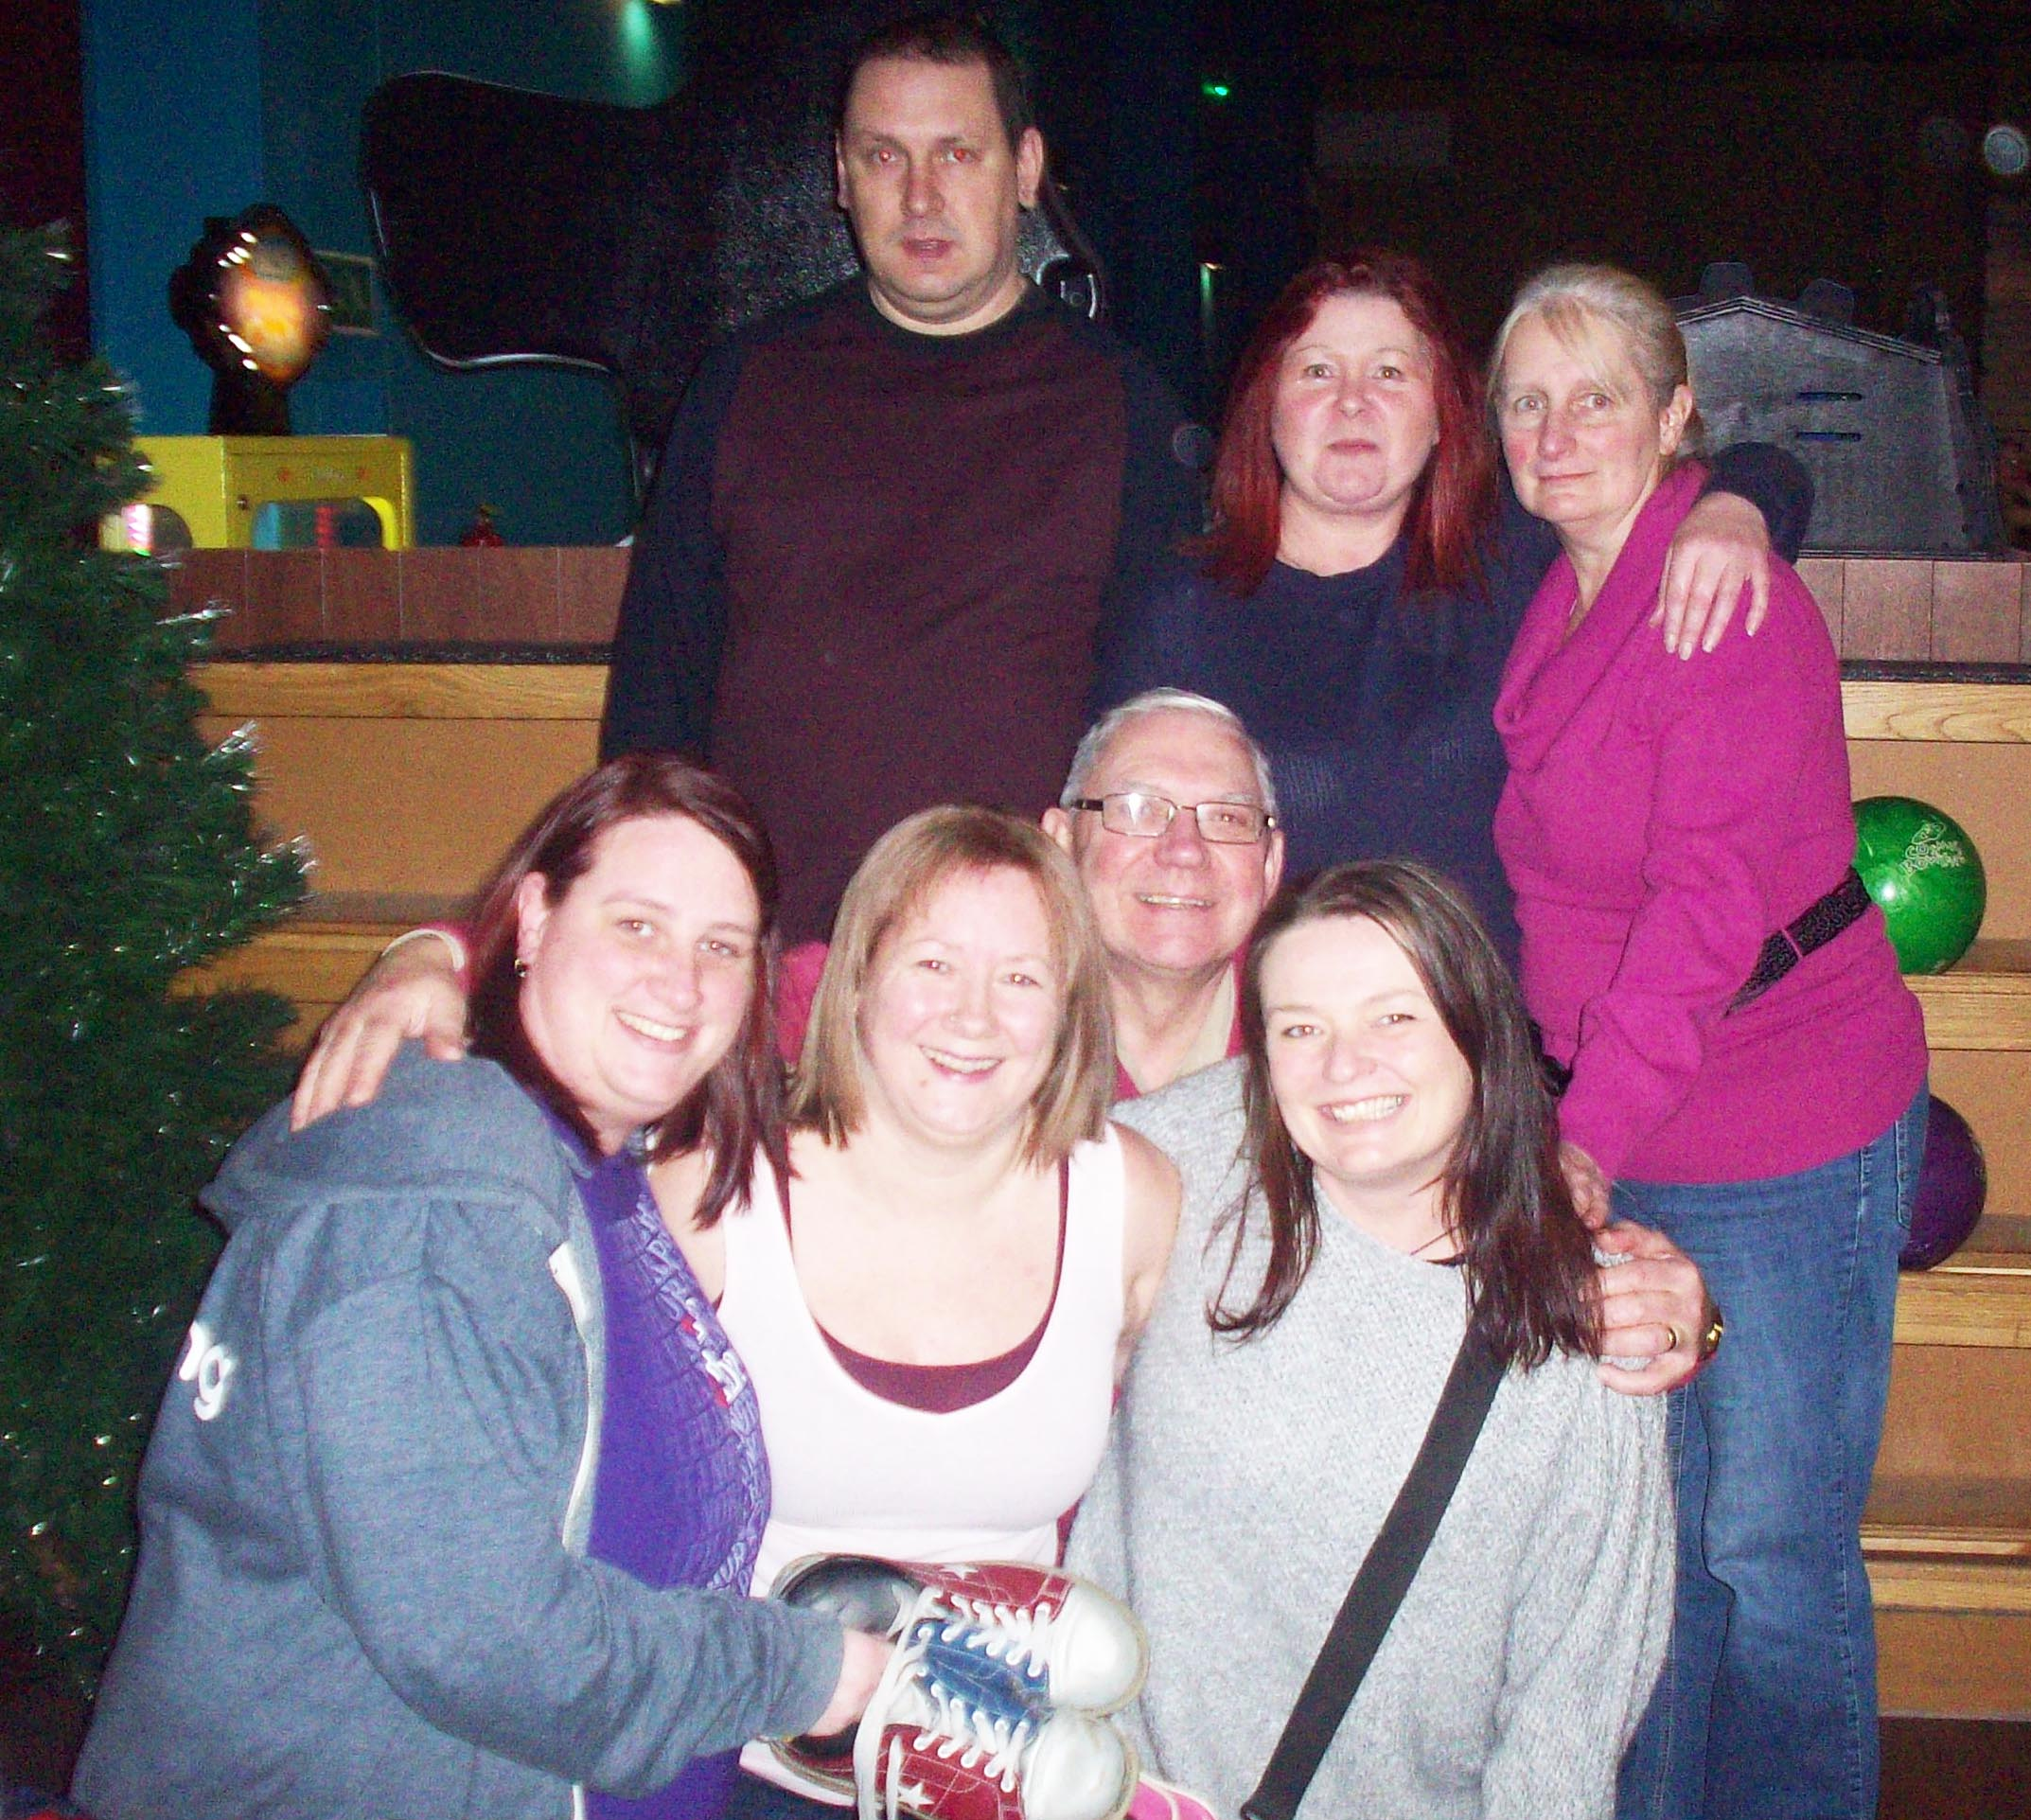 Staff & Volunteers Enjoy Night Out at Planet Leisure